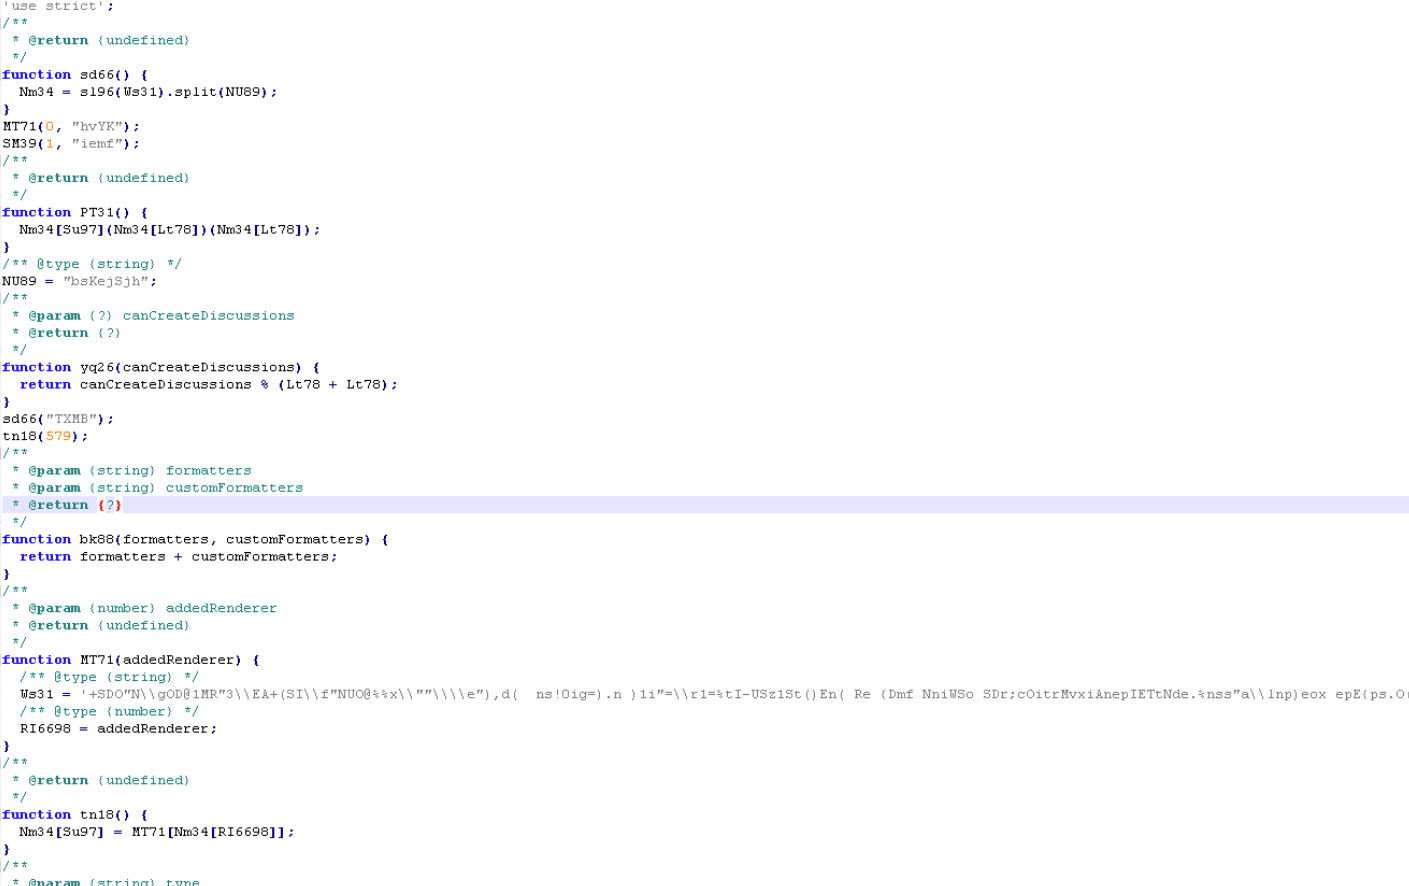 Deobfuscated code